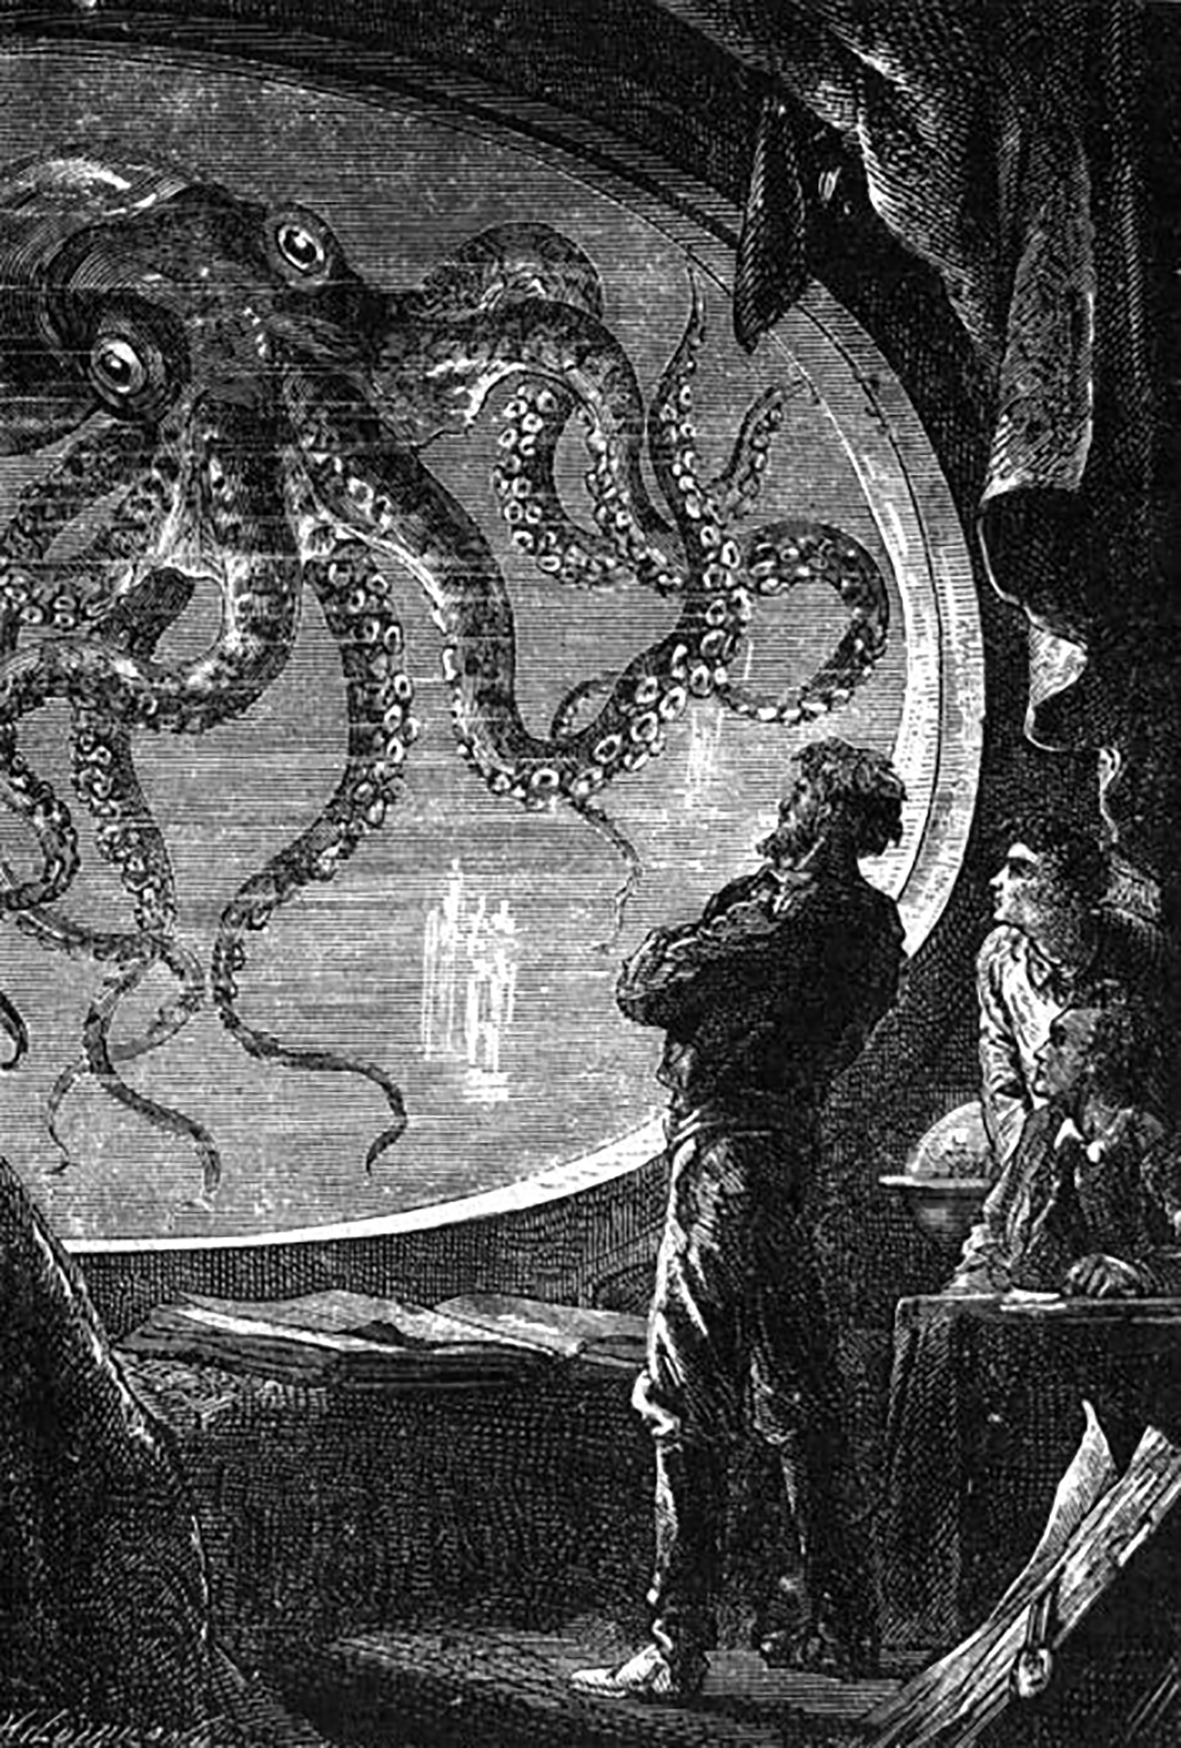 captain Nemo and the octopus